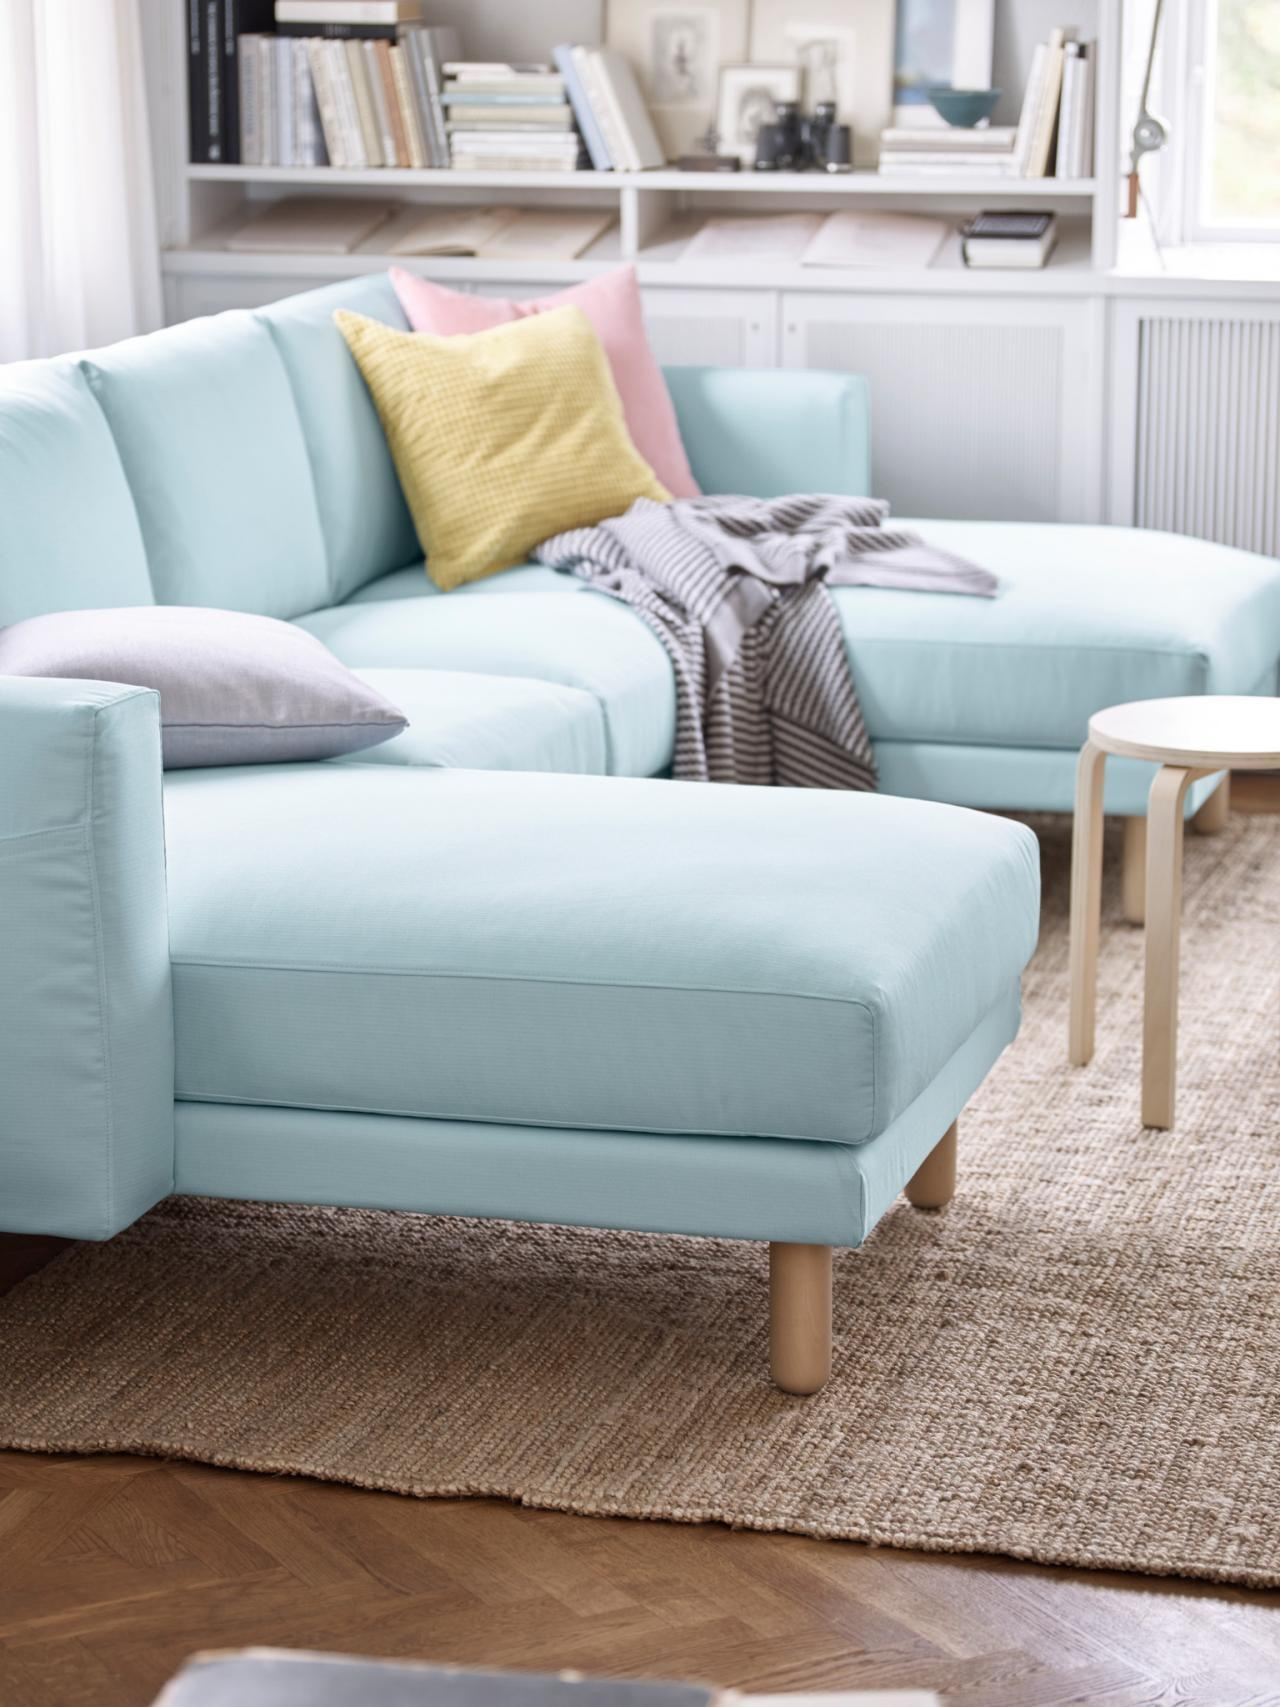 5 Apartment Sized Sofas That Are Lifesavers | Hgtv's Decorating intended for Condo Size Sofas